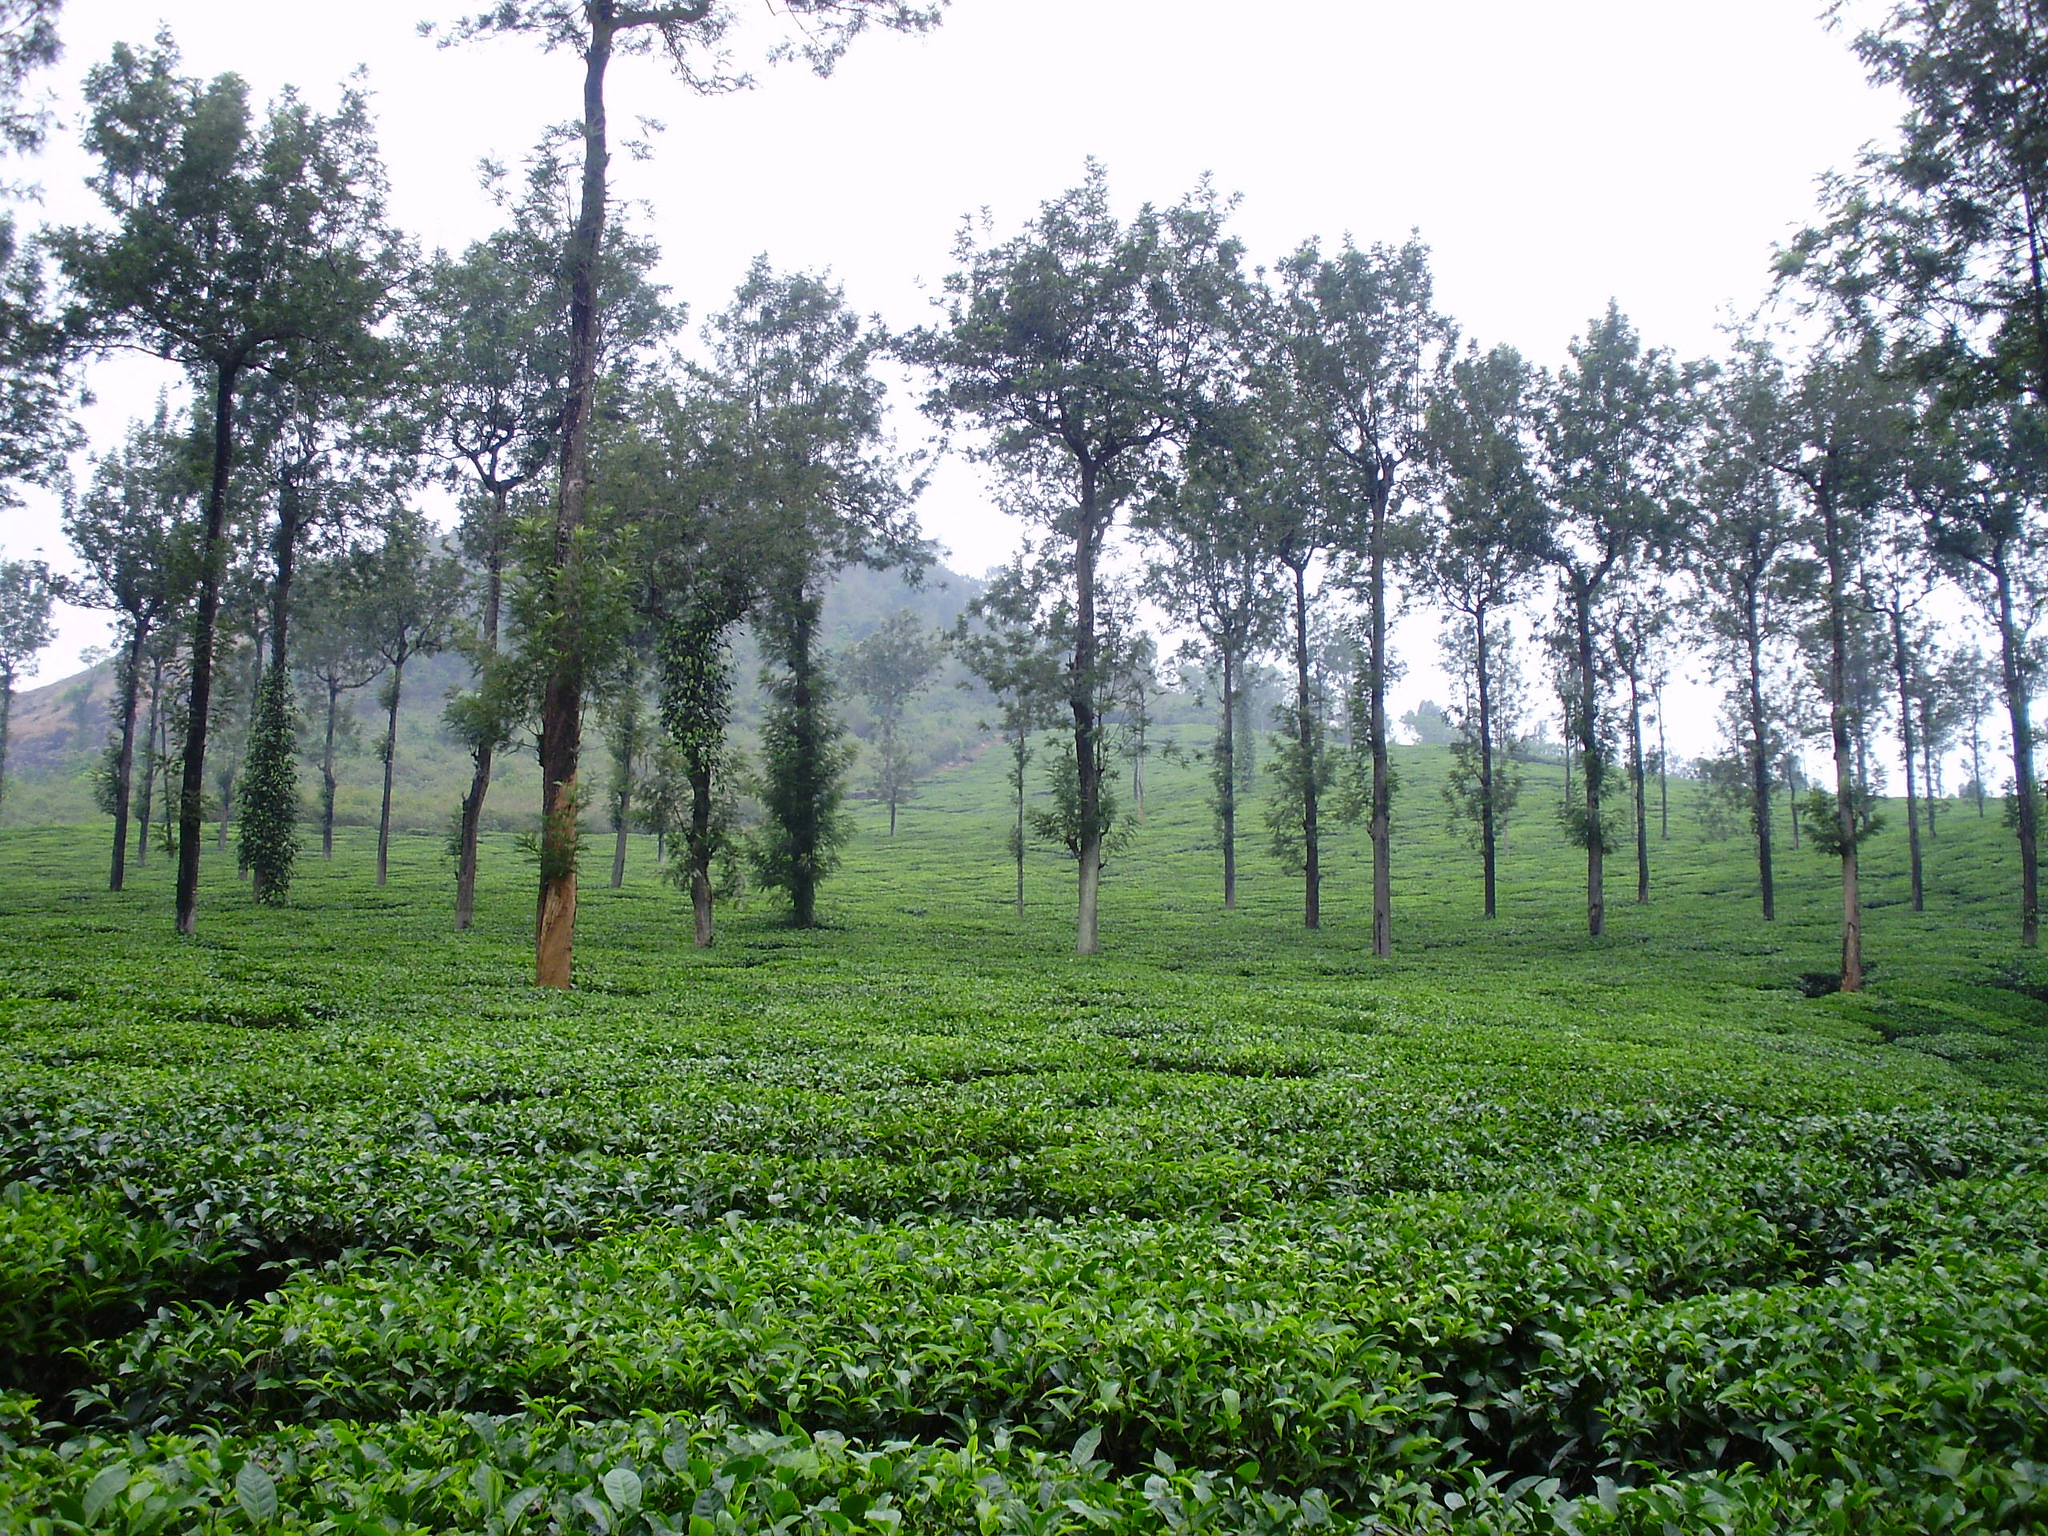 MEDIA RELEASE: Scientists map land suitable for agroforestry in South Asia